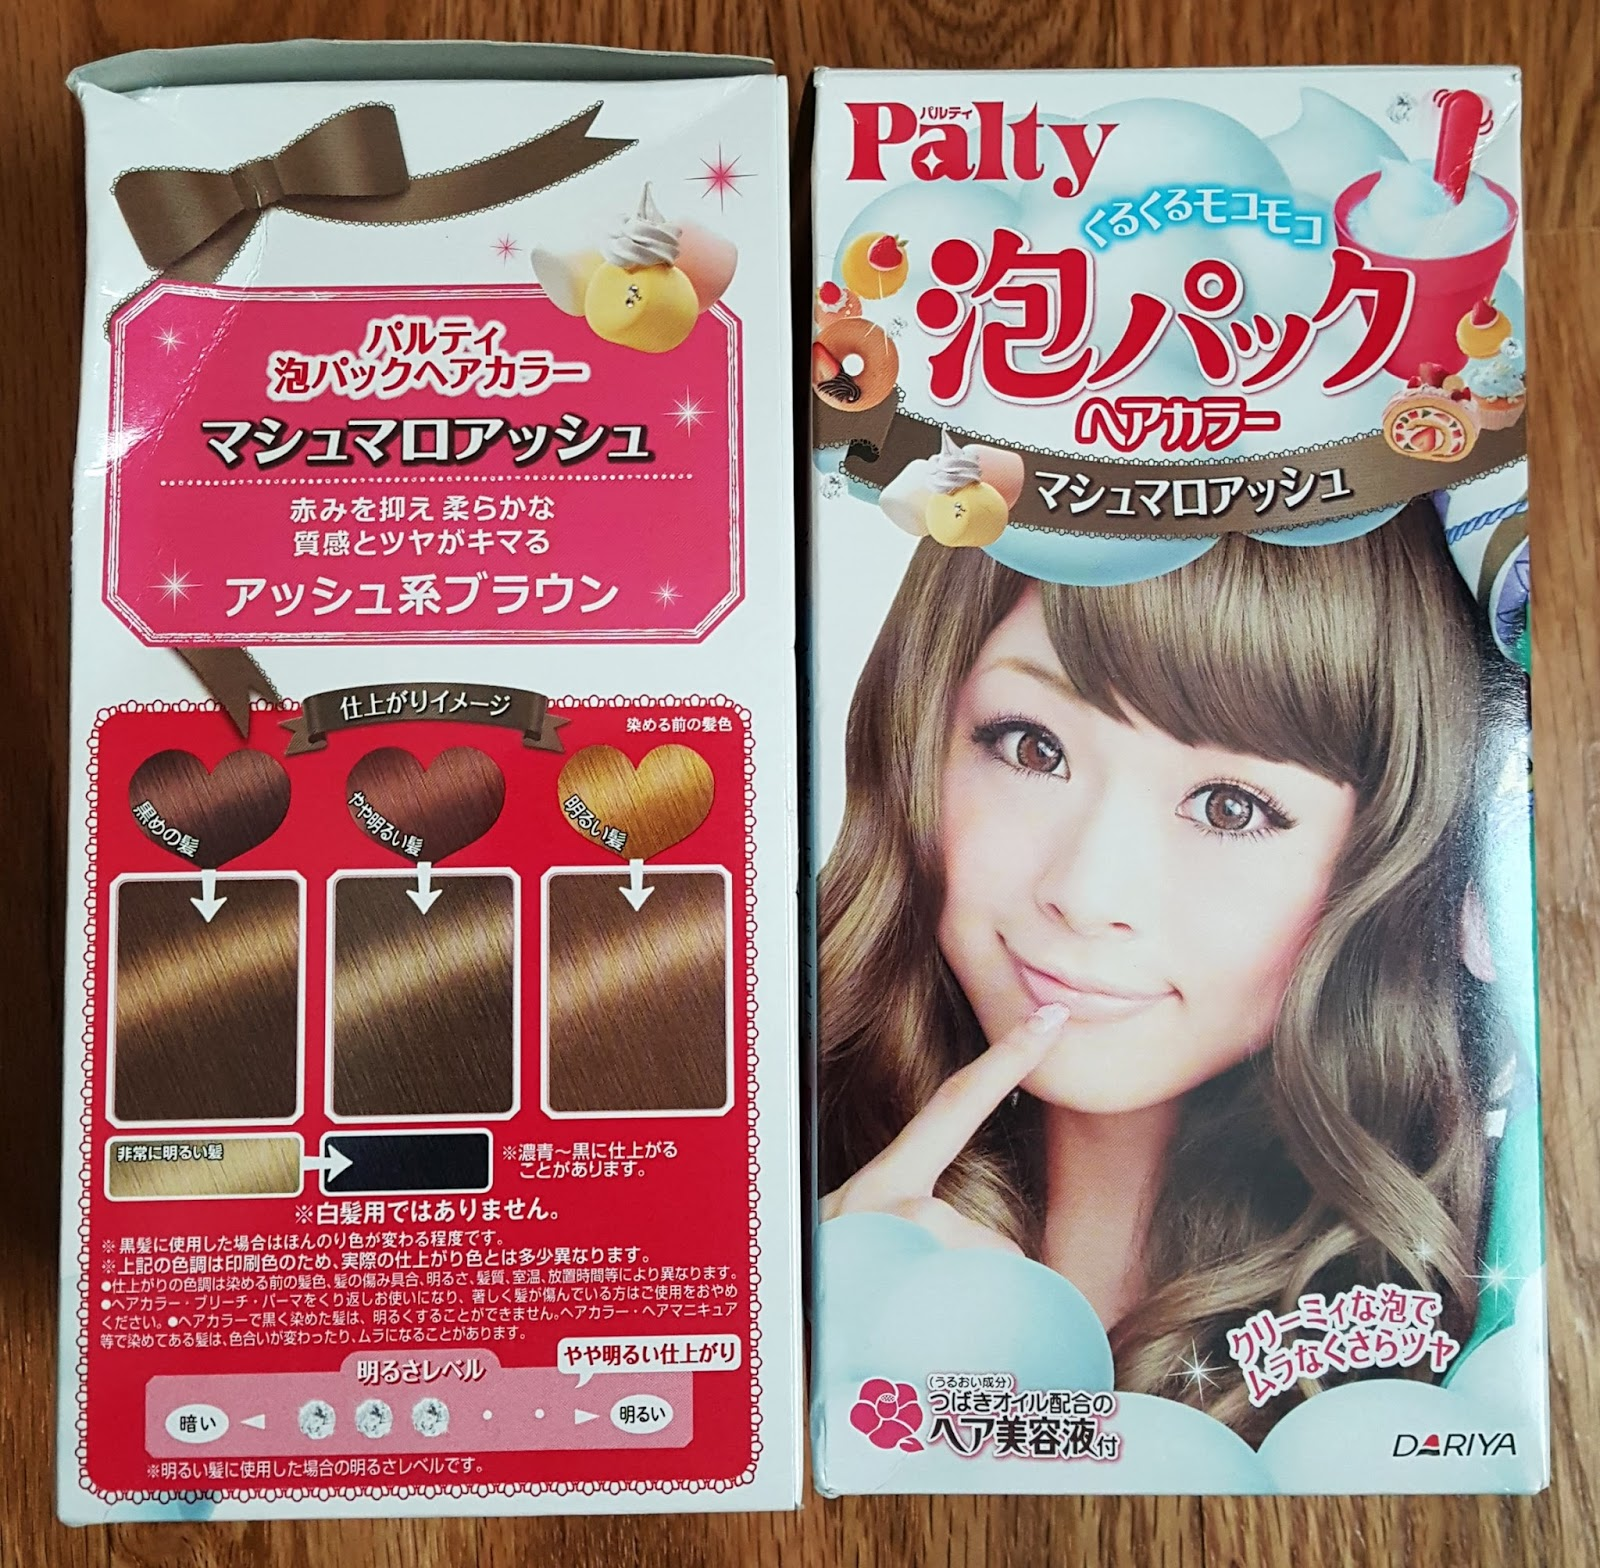 Do Re Mi Palty Marshmallow Ash Experience